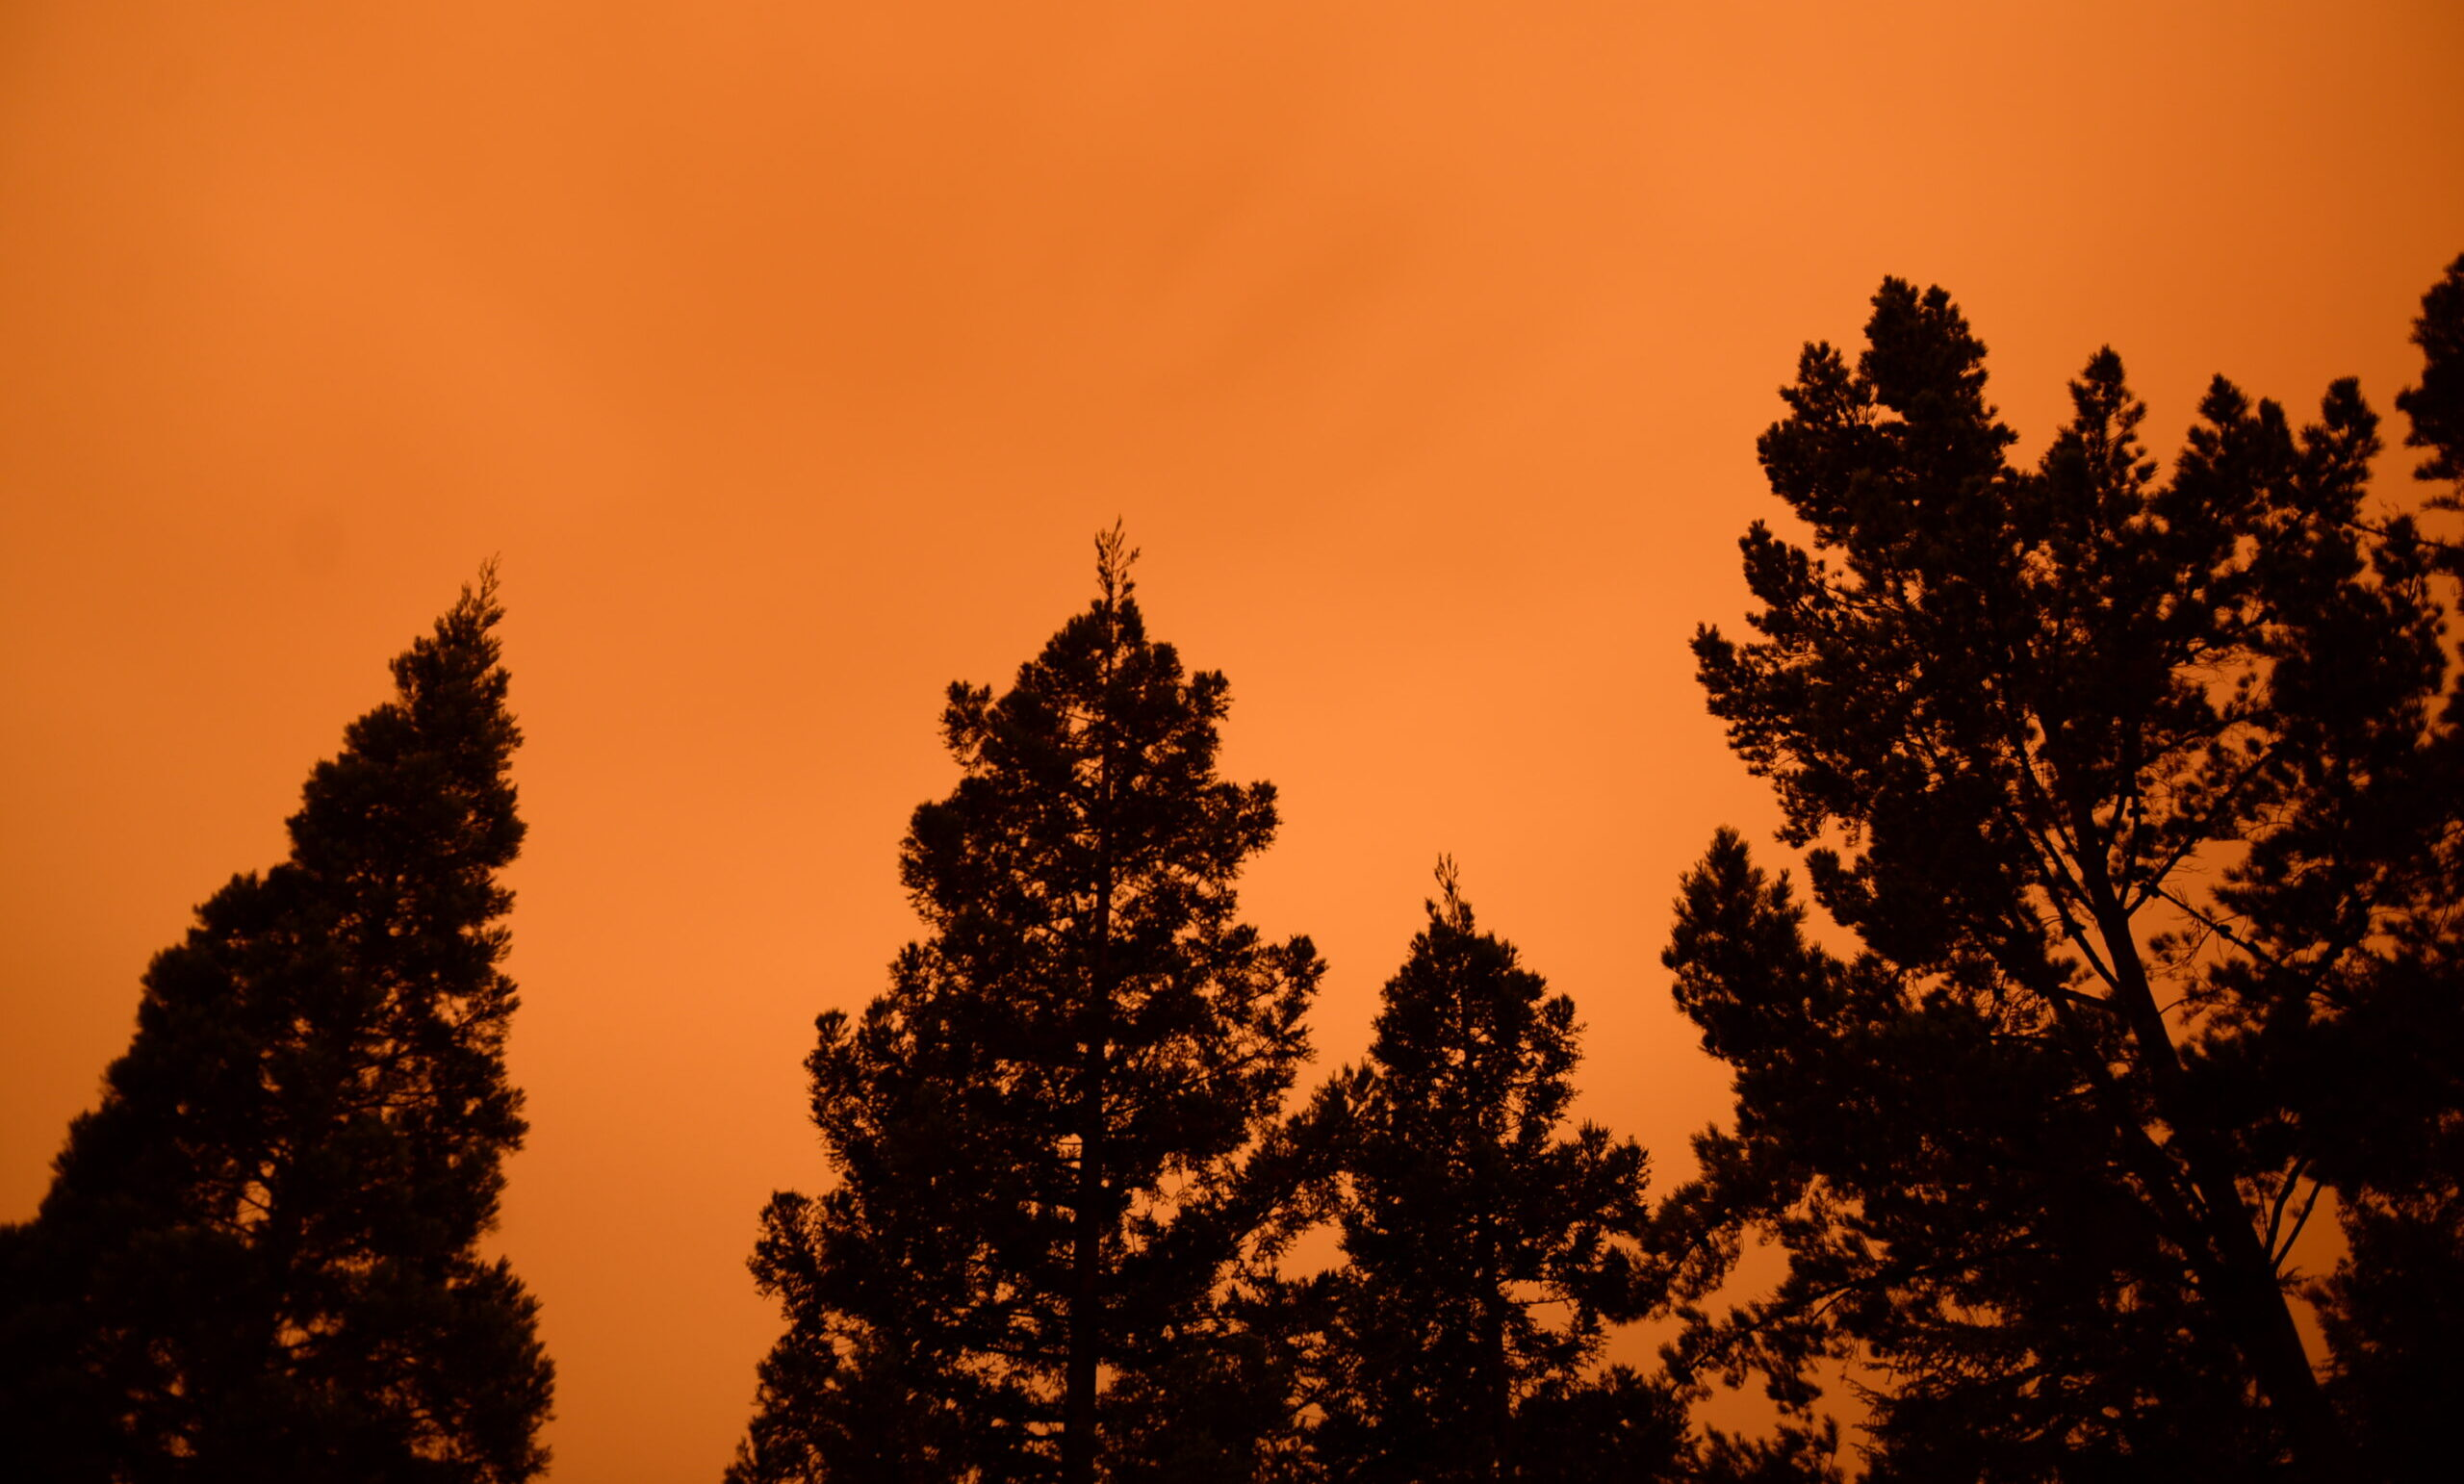 Walnut Creek, Calif. on September 9, 2020, under wildfire smoke and ash. (Paul Sherer/ Direct Relief)